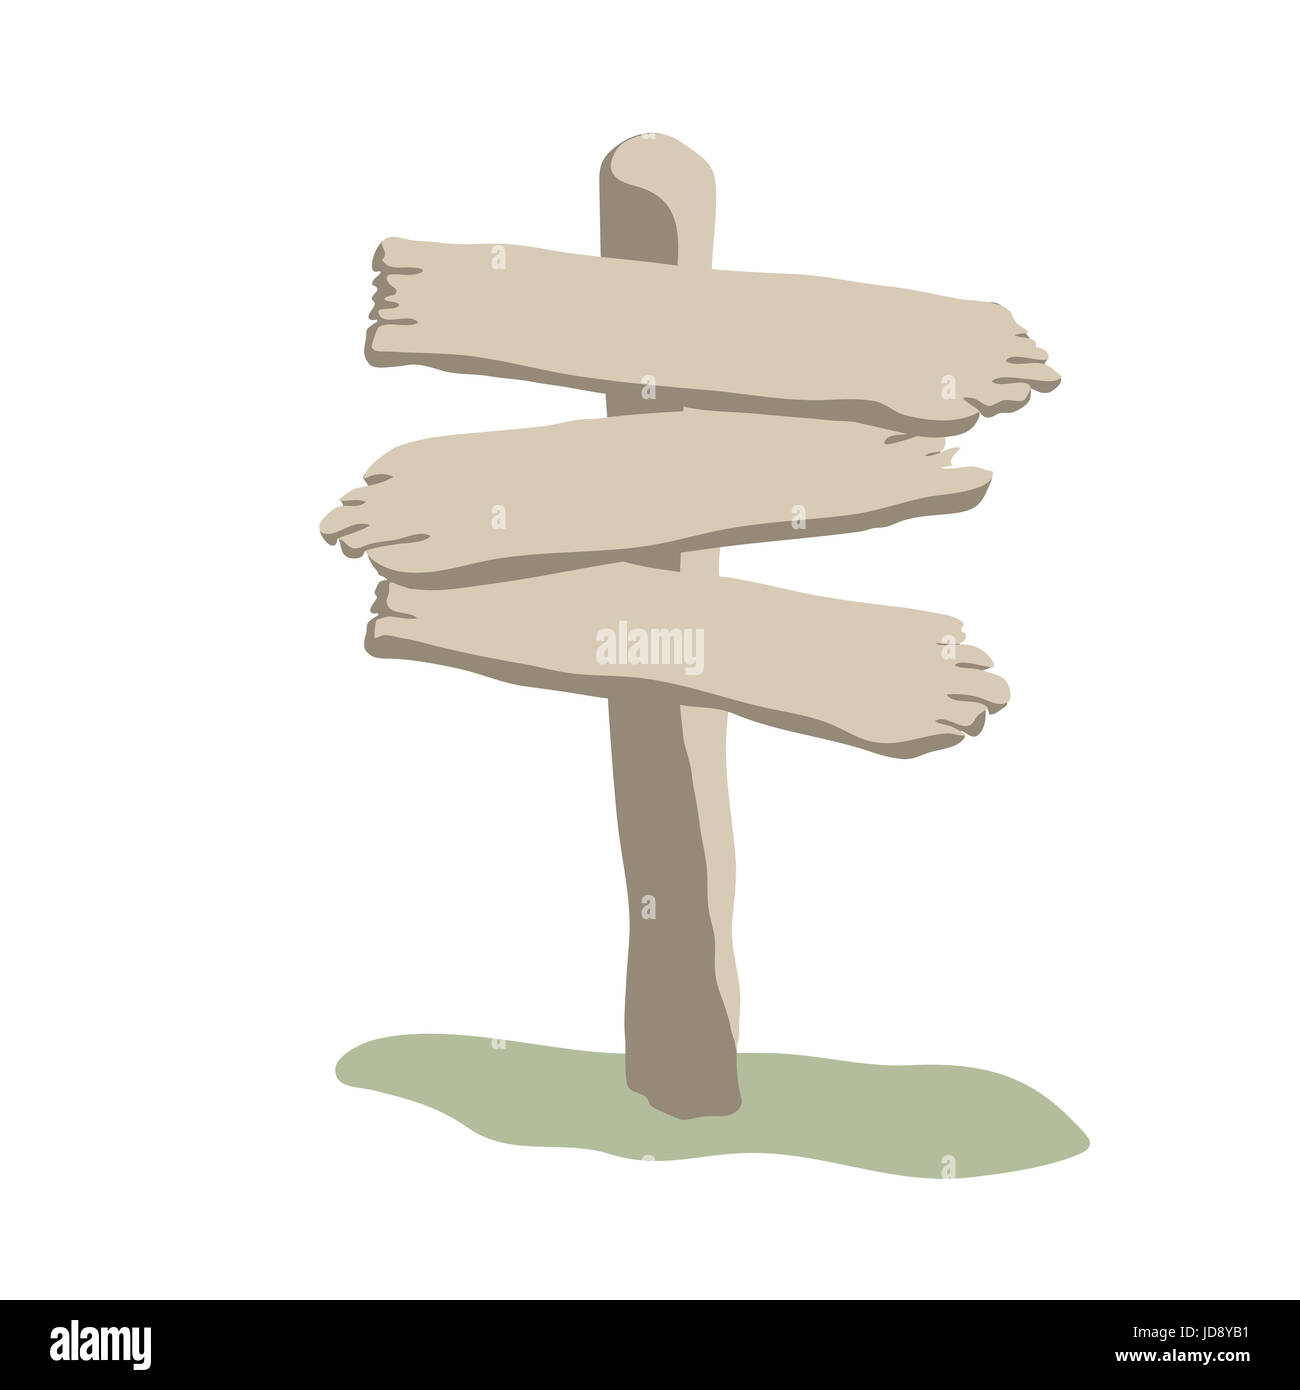 Three arrow shapes blank weathered wooden sign boards for message cartoon style - Stock Image